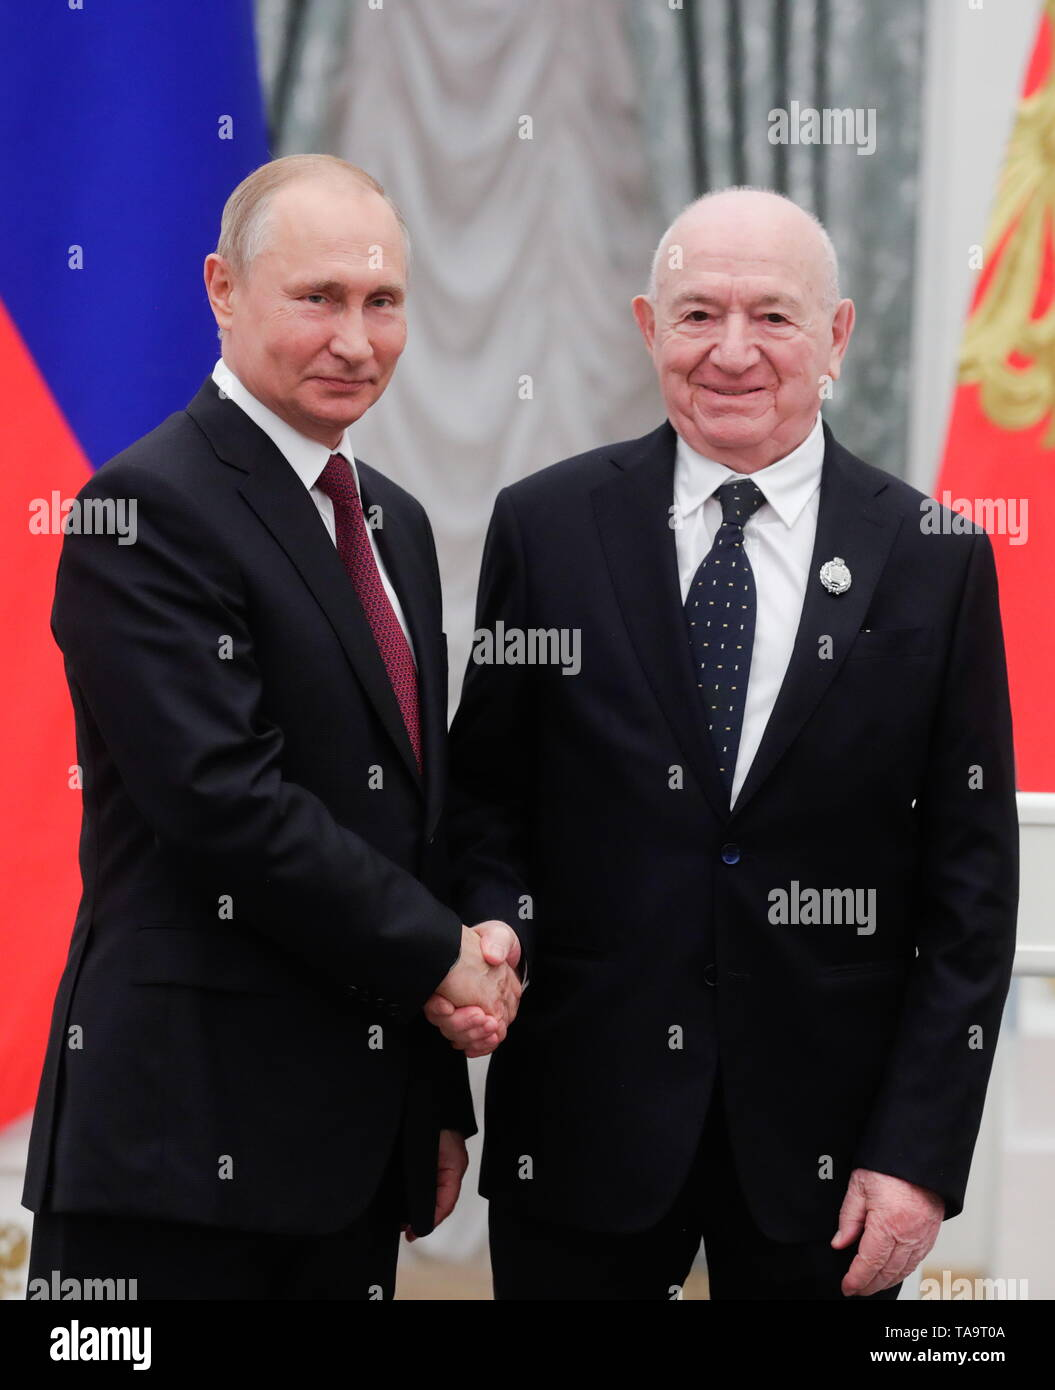 Moscow, Russia. 23rd May, 2019. MOSCOW, RUSSIA - MAY 23, 2019: Russia's President Vladimir Putin (L) awards a title of the honoured sports worker to Nikita Simonyan, First Vice President of the Russian Football Union, during a ceremony to present state decorations at the Moscow Kremlin. Mikhail Metzel/TASS Credit: ITAR-TASS News Agency/Alamy Live News - Stock Image